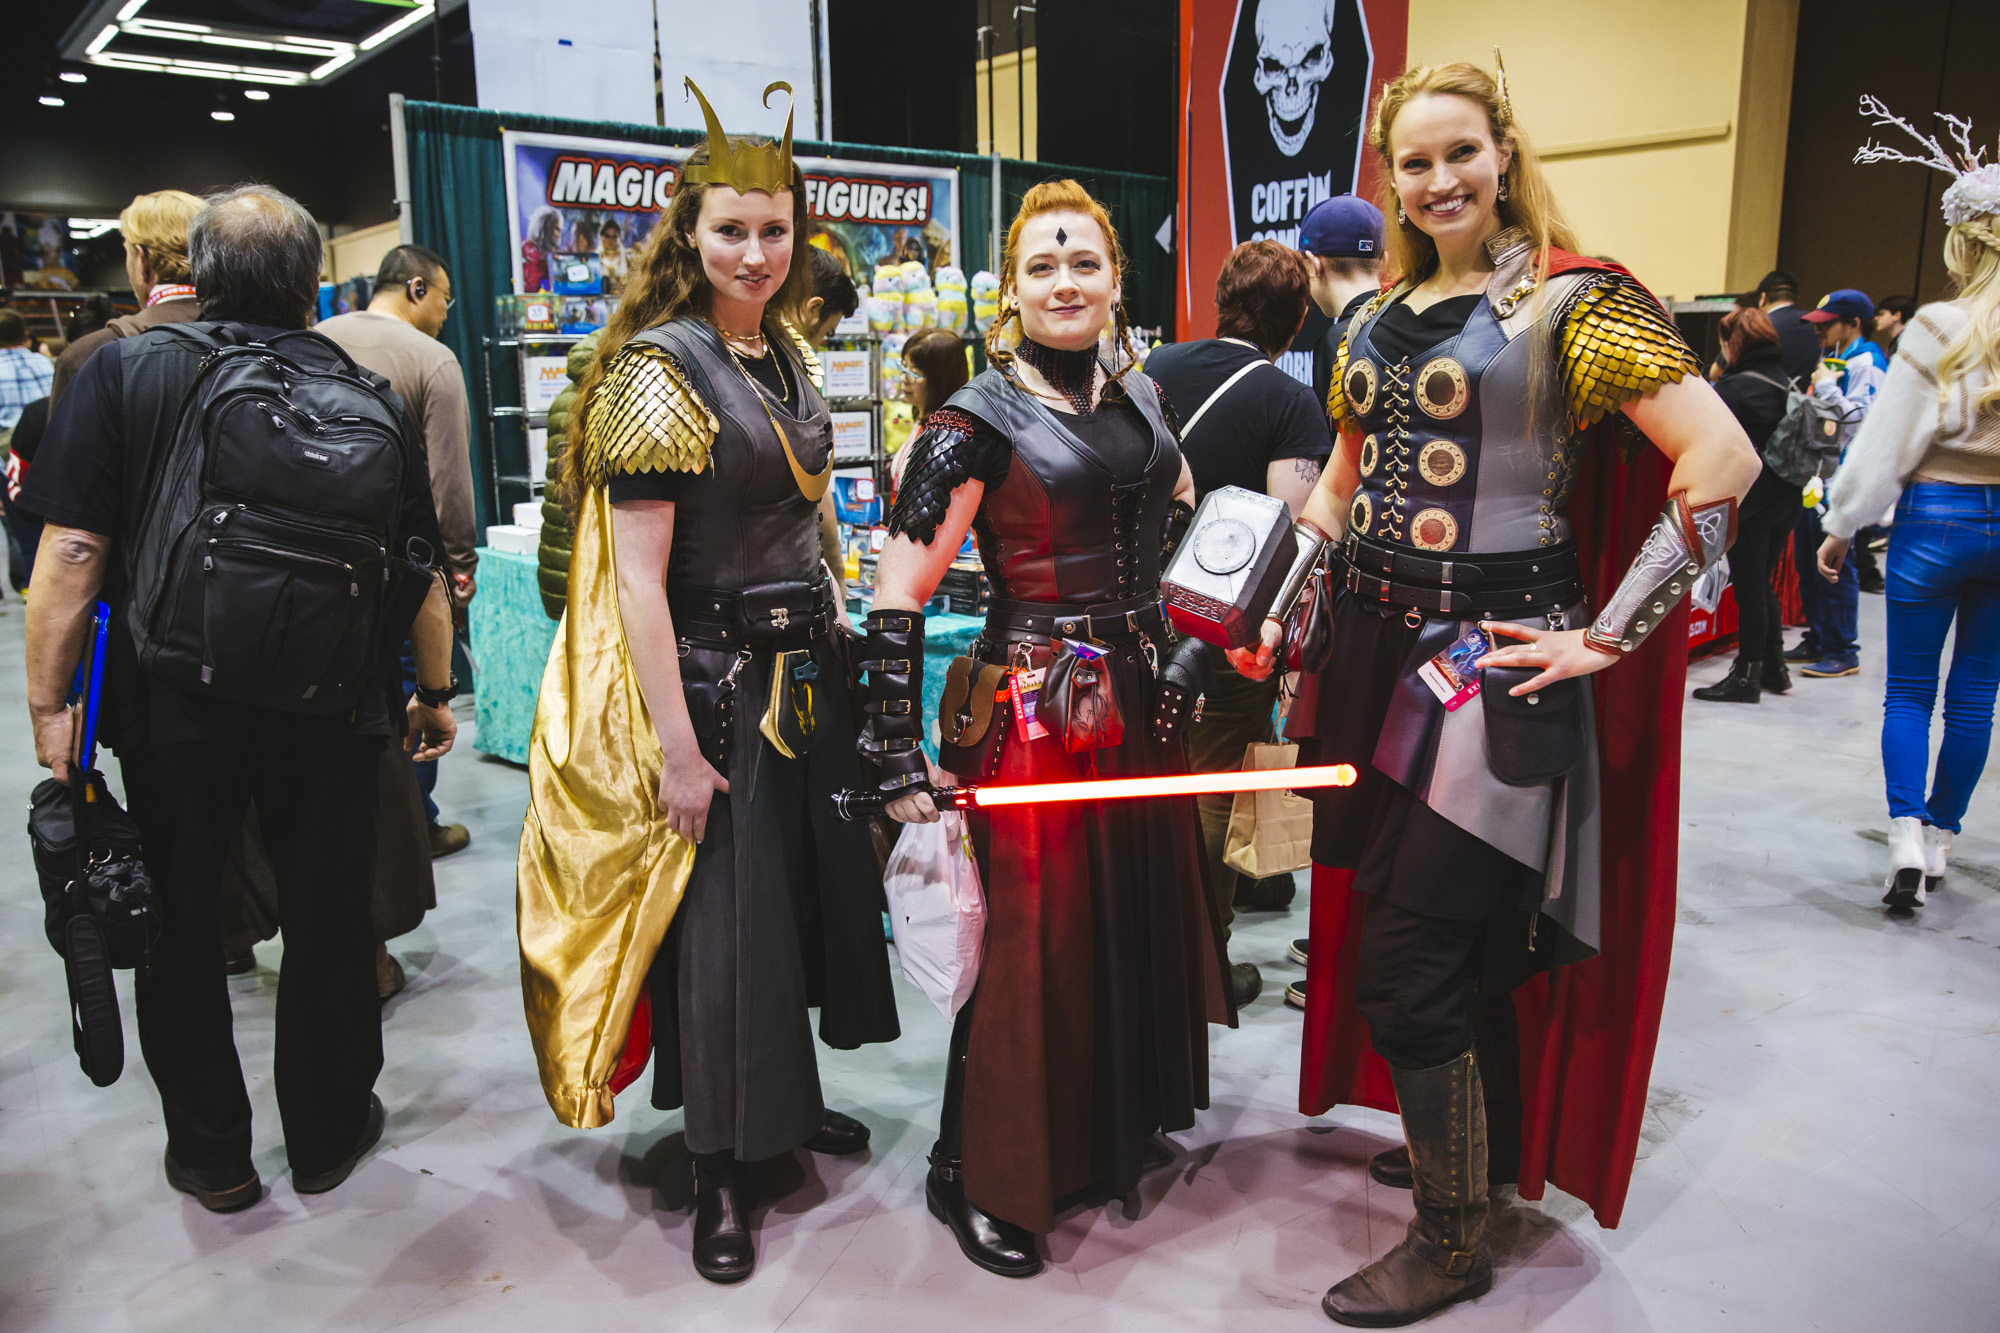 <p>Emerald City Comic Con is the largest comic book and pop culture convention in the Pacific Northwest. Thousands come to the Washington State Convention Center in Seattle for 4 days of cosplay, comic books, celebrities, panels and more. This year, they're expecting upwards of 95,000 people! Today, (March 14, 2019) is the first day of the convention. (Image: Sunita Martini / Seattle Refined)</p>